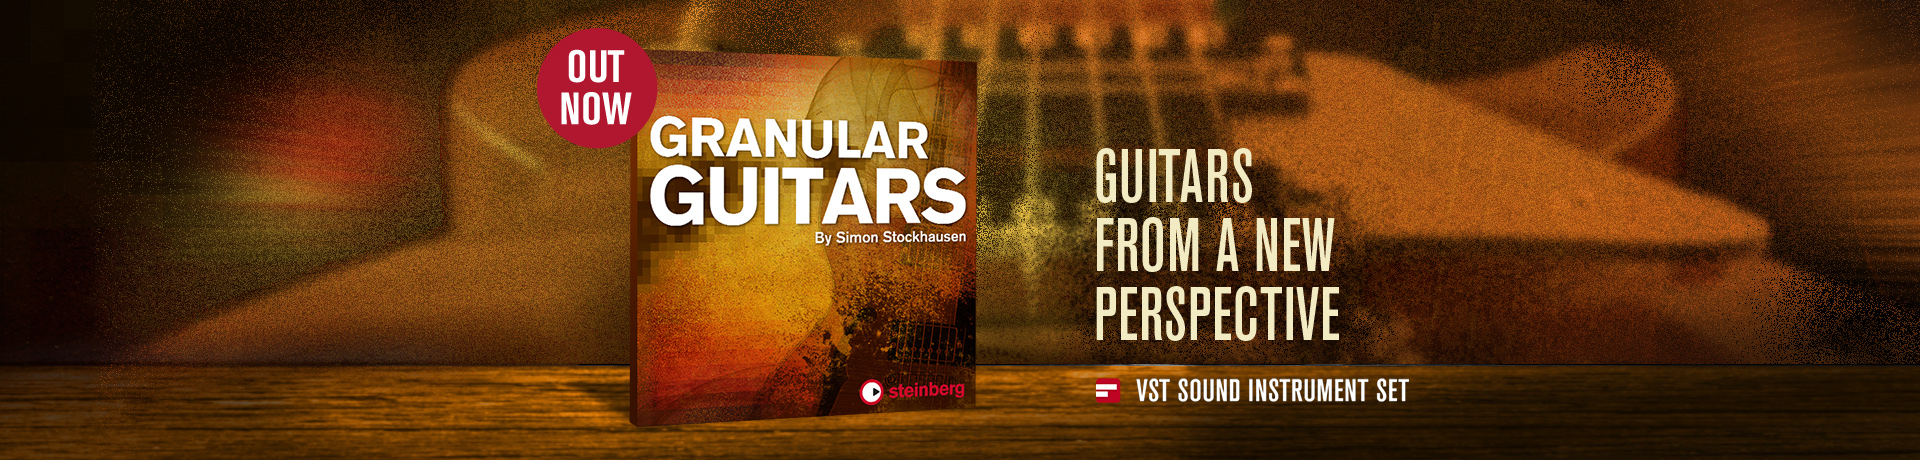 Granular Guitars